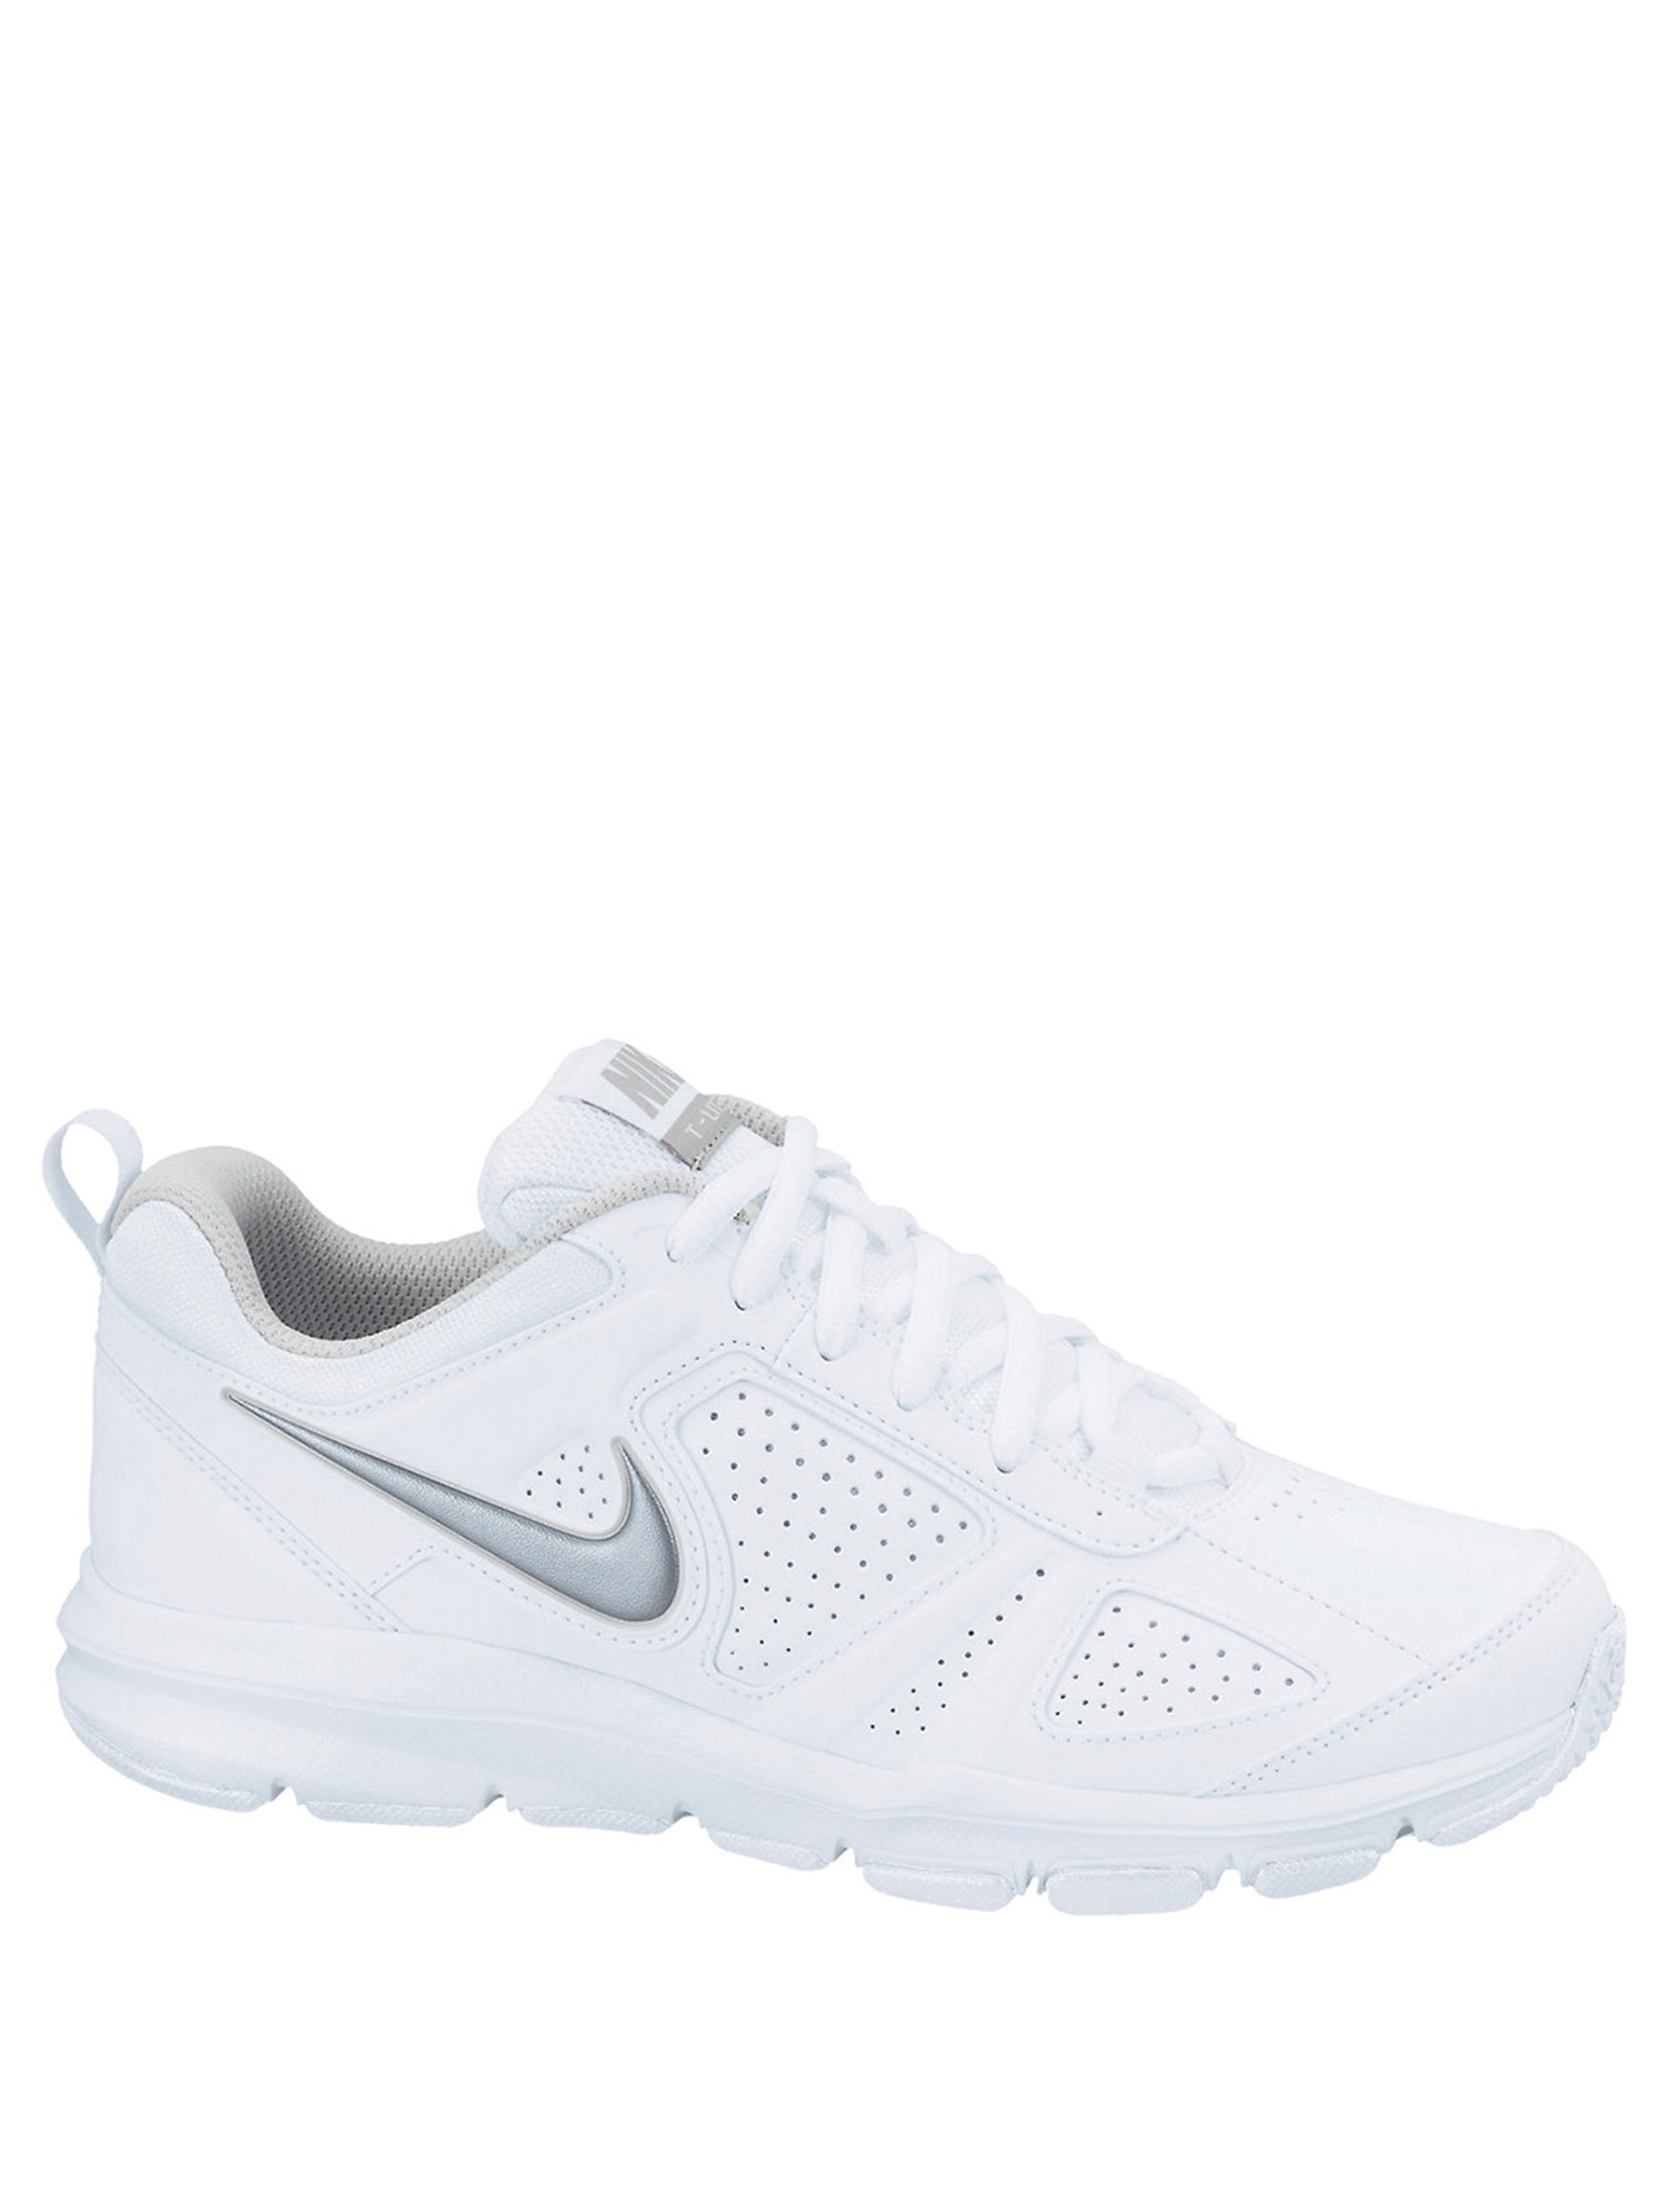 nike t lite xi wide athletic shoes stage stores